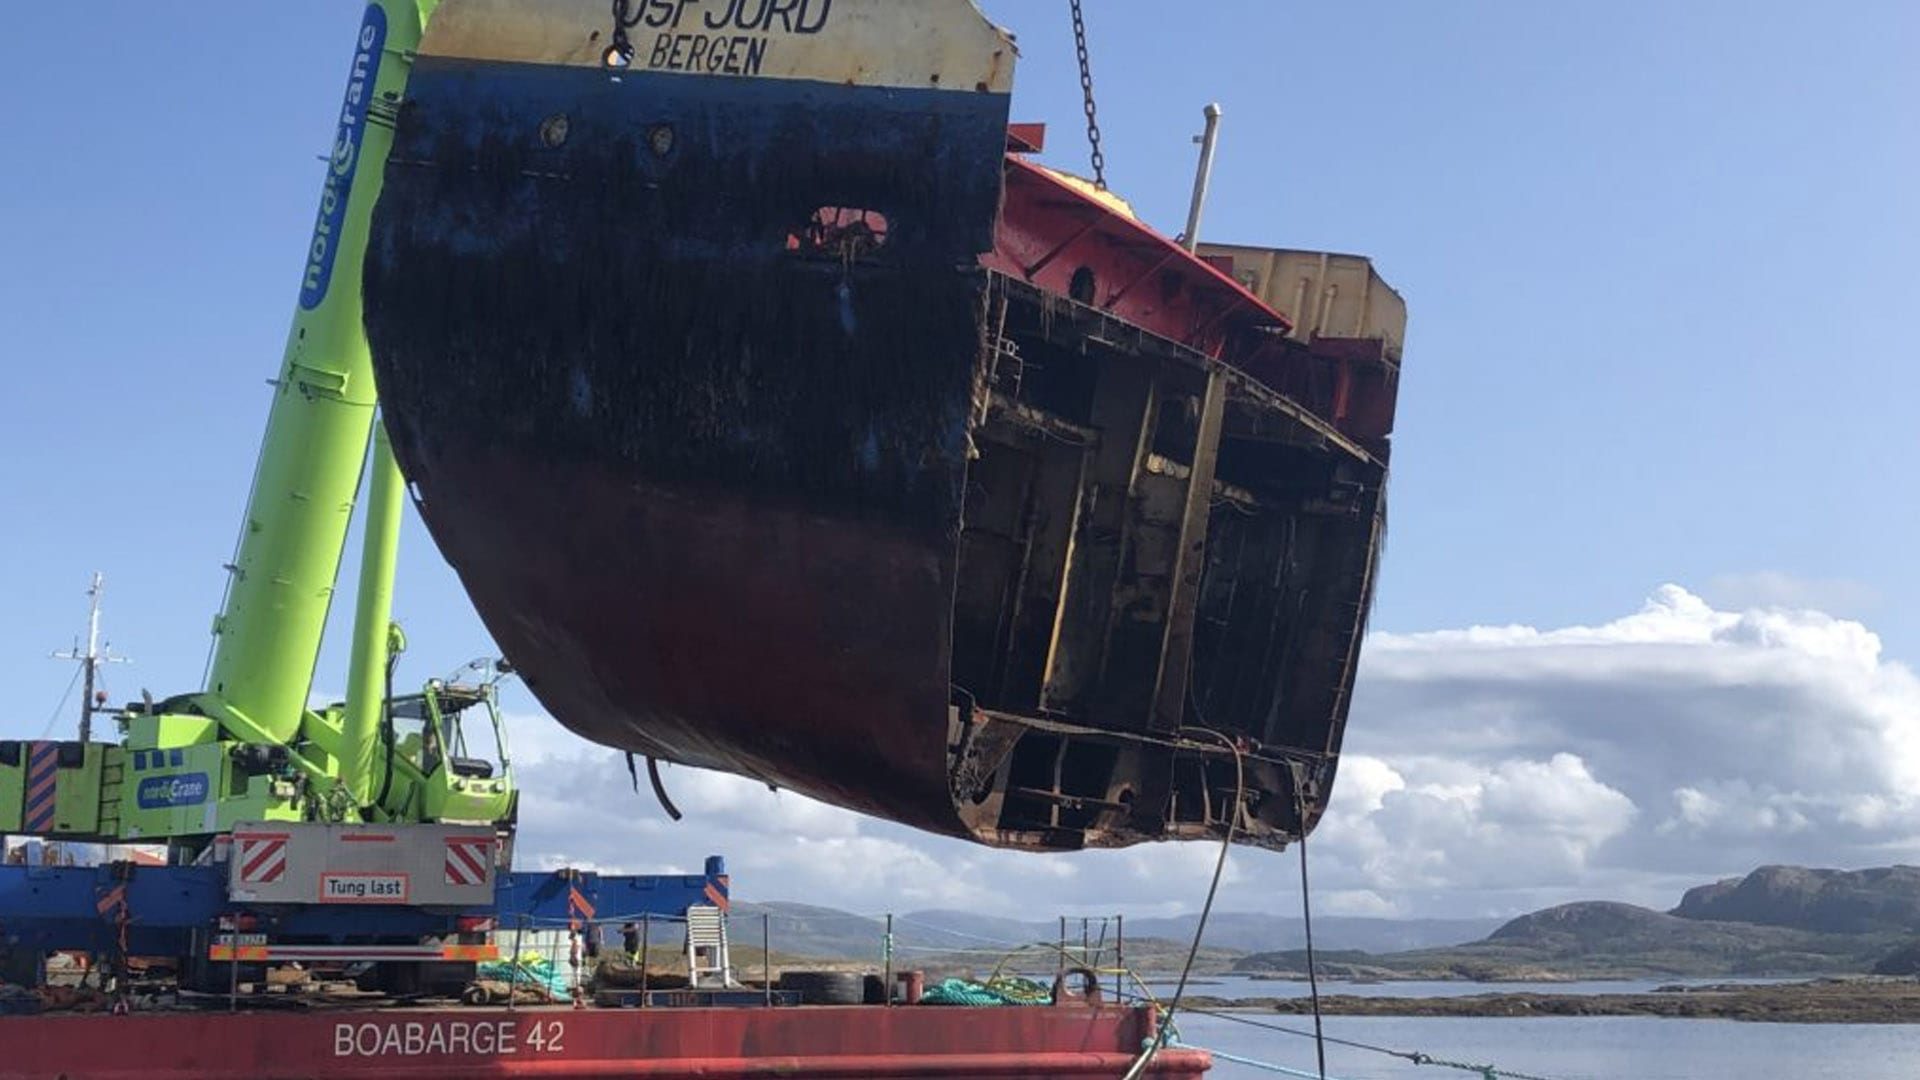 Norway: Wreck of Grounded Cargo Ship Cut Up and Removed